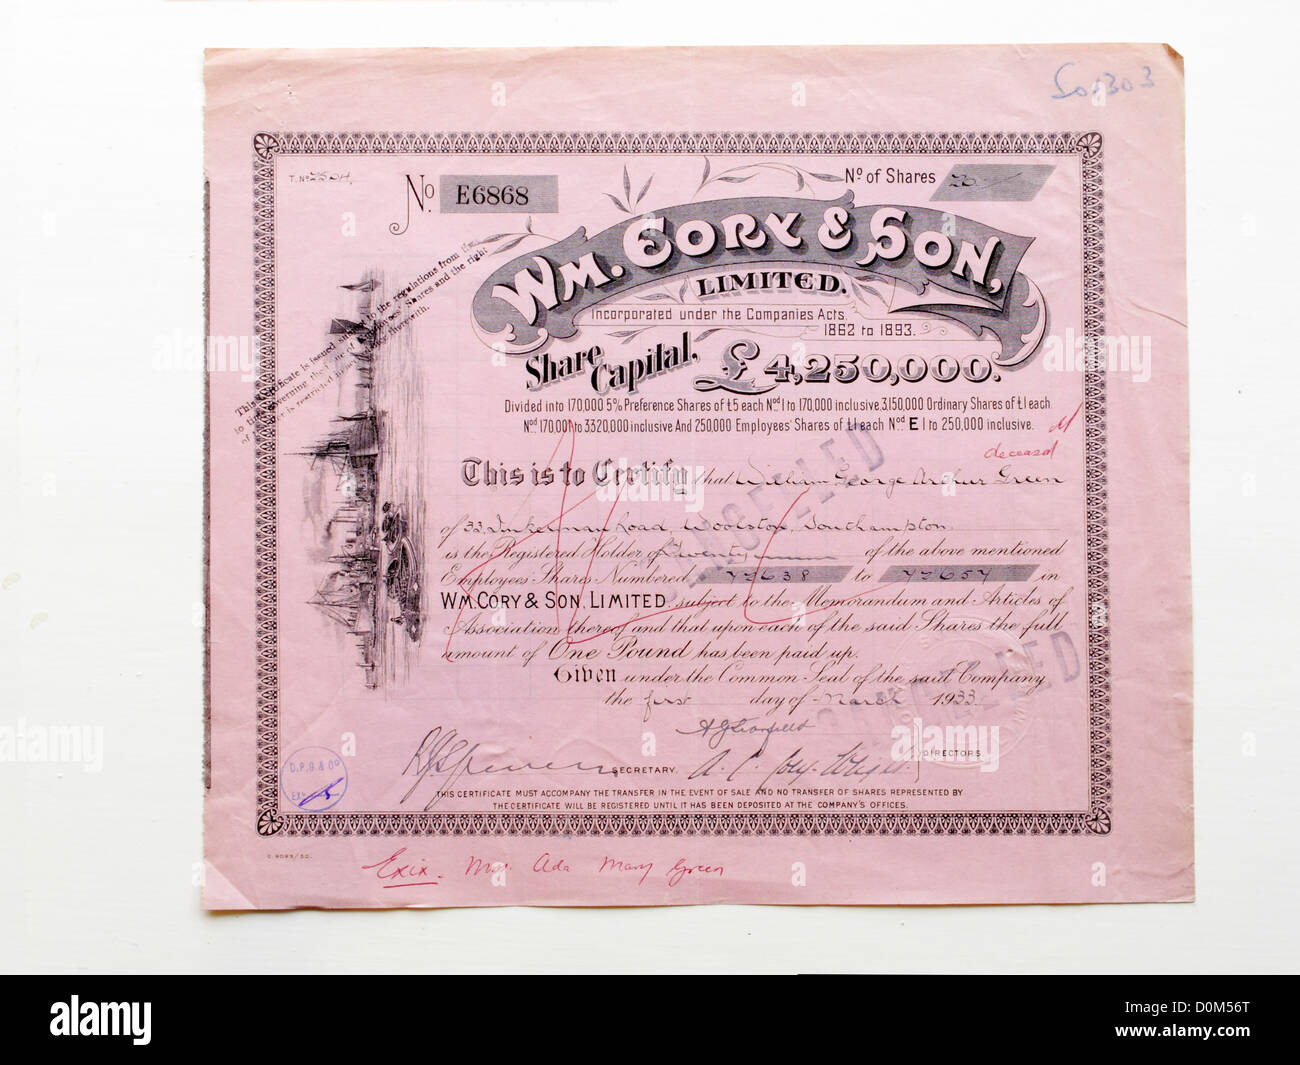 Share certificate of William Cory and Son Victorian coal shipping – Company Share Certificates